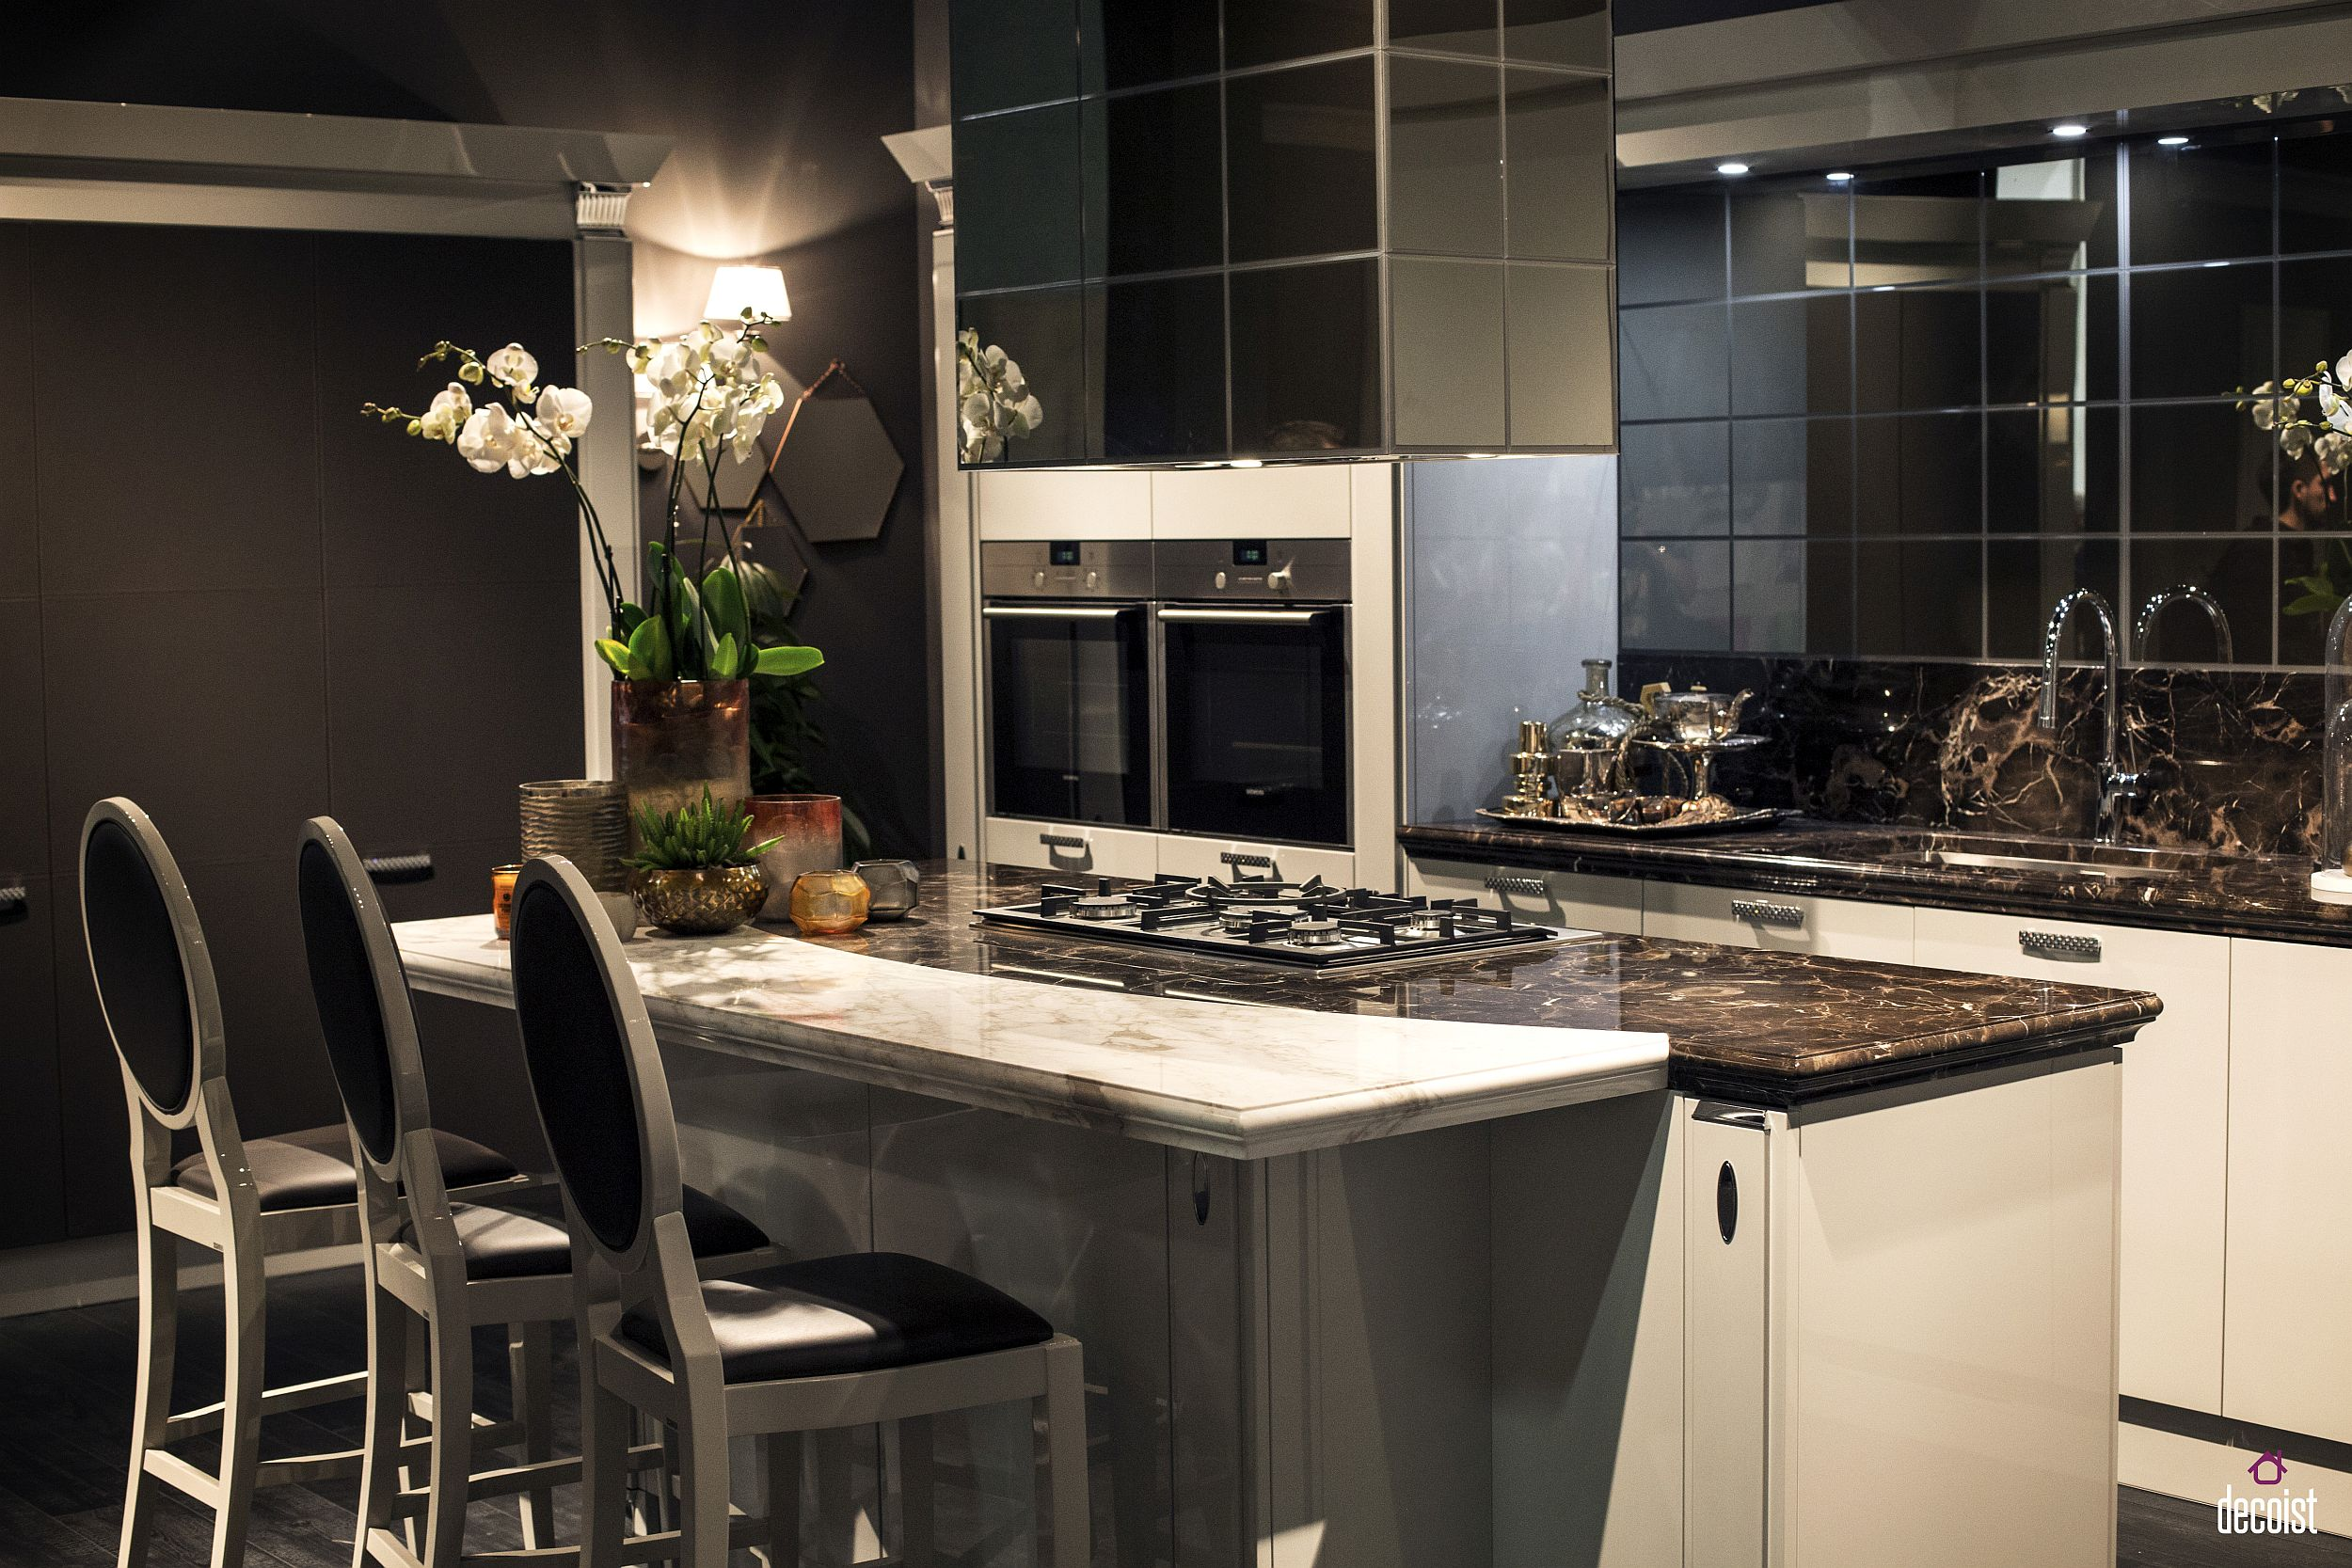 Modern classic kitchen from Scavolini in black and white with an island that multi tasks